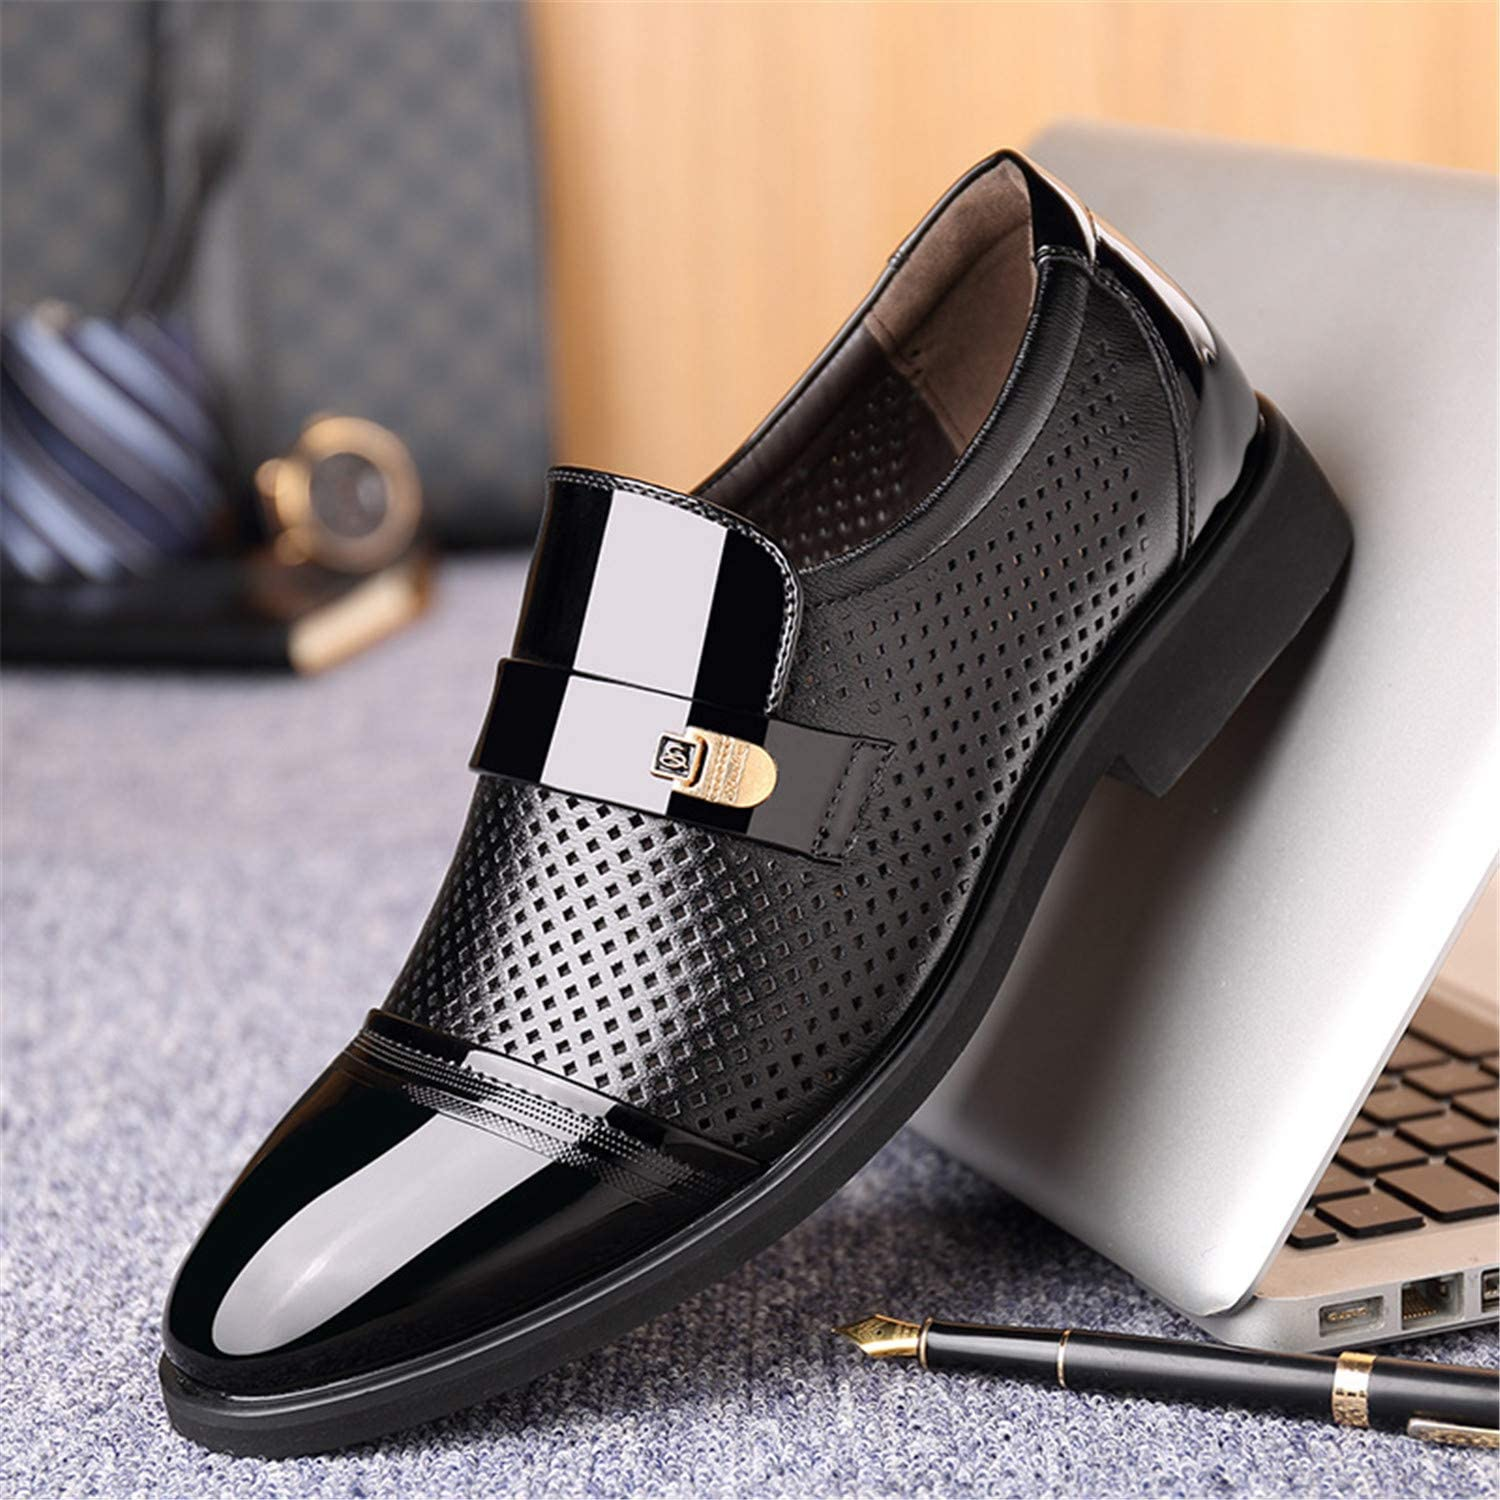 Sonjer New Summer Men Hollow Out Men Formal Shoes Men Microfiber Leather Quality Shoes Breathable Men Shoes for Business